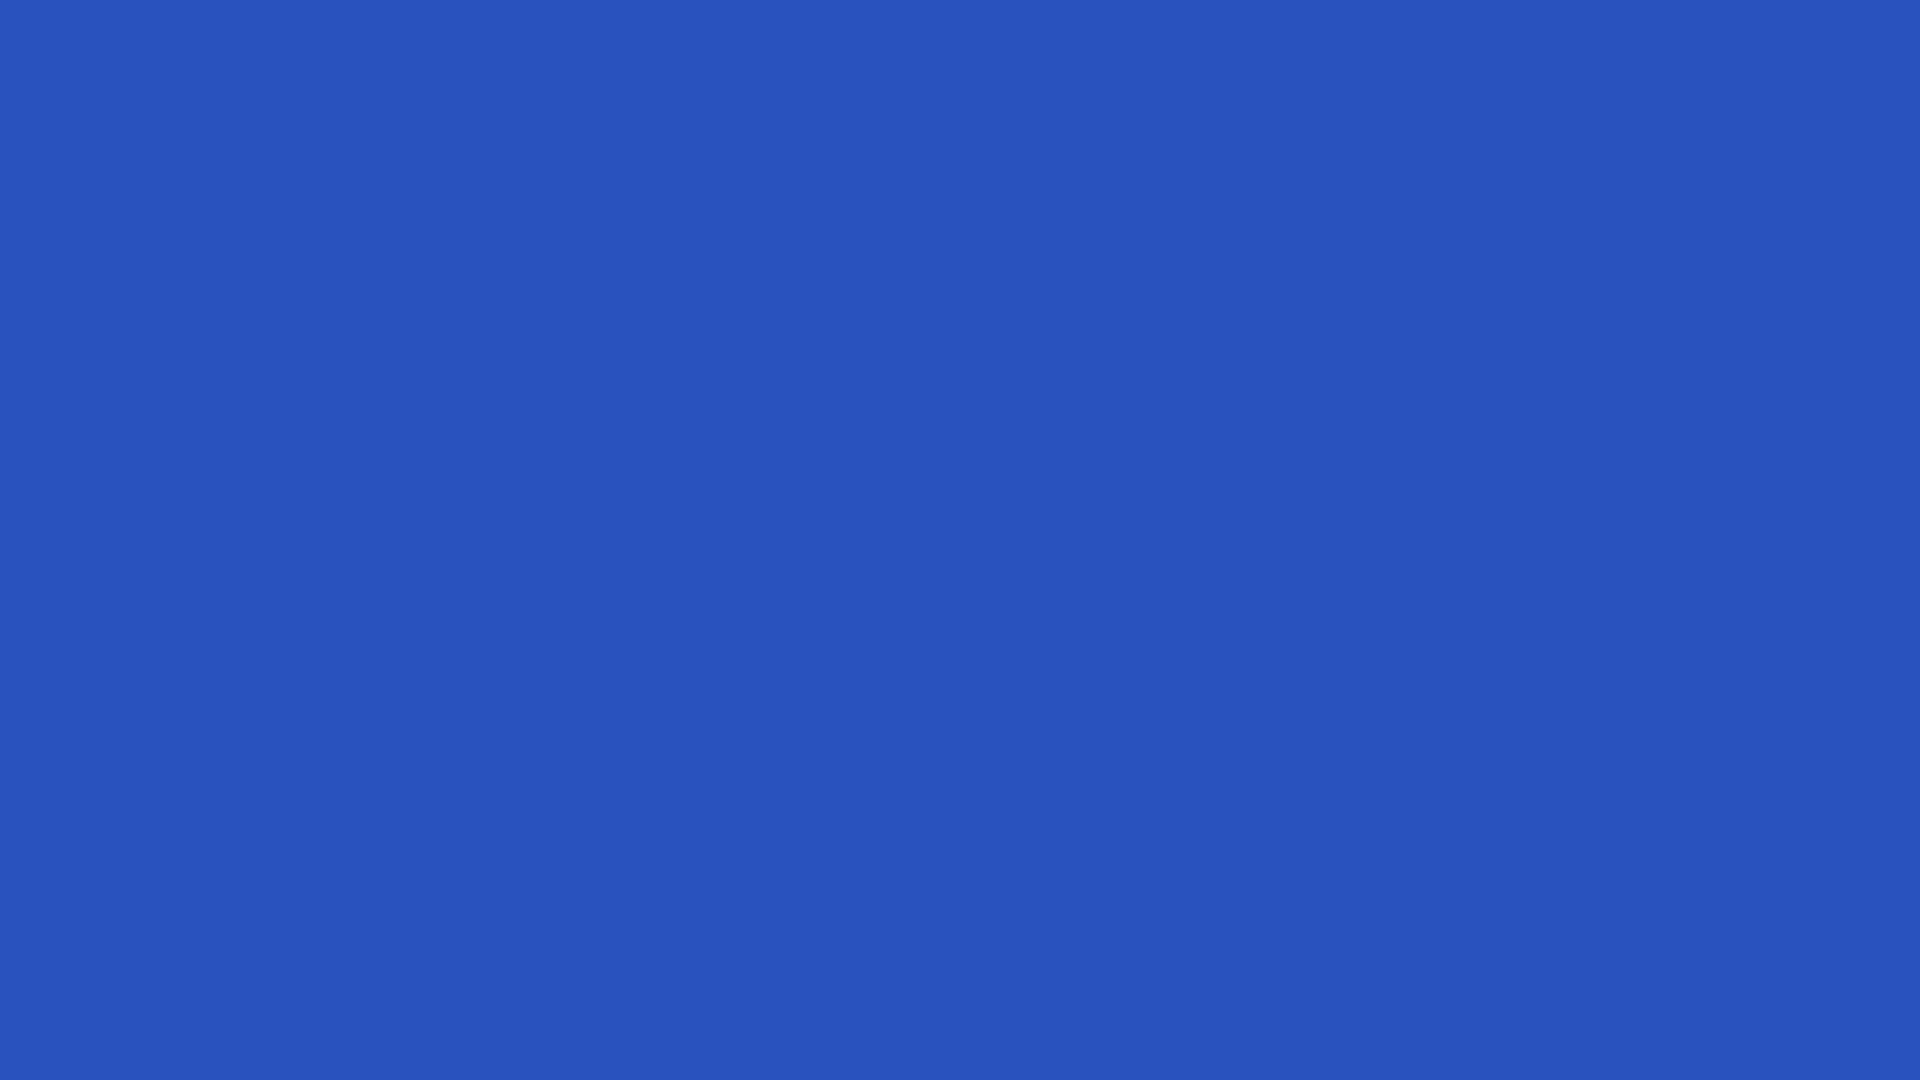 cerulean-blue-solid-color-wallpaper - wallpaper.wiki